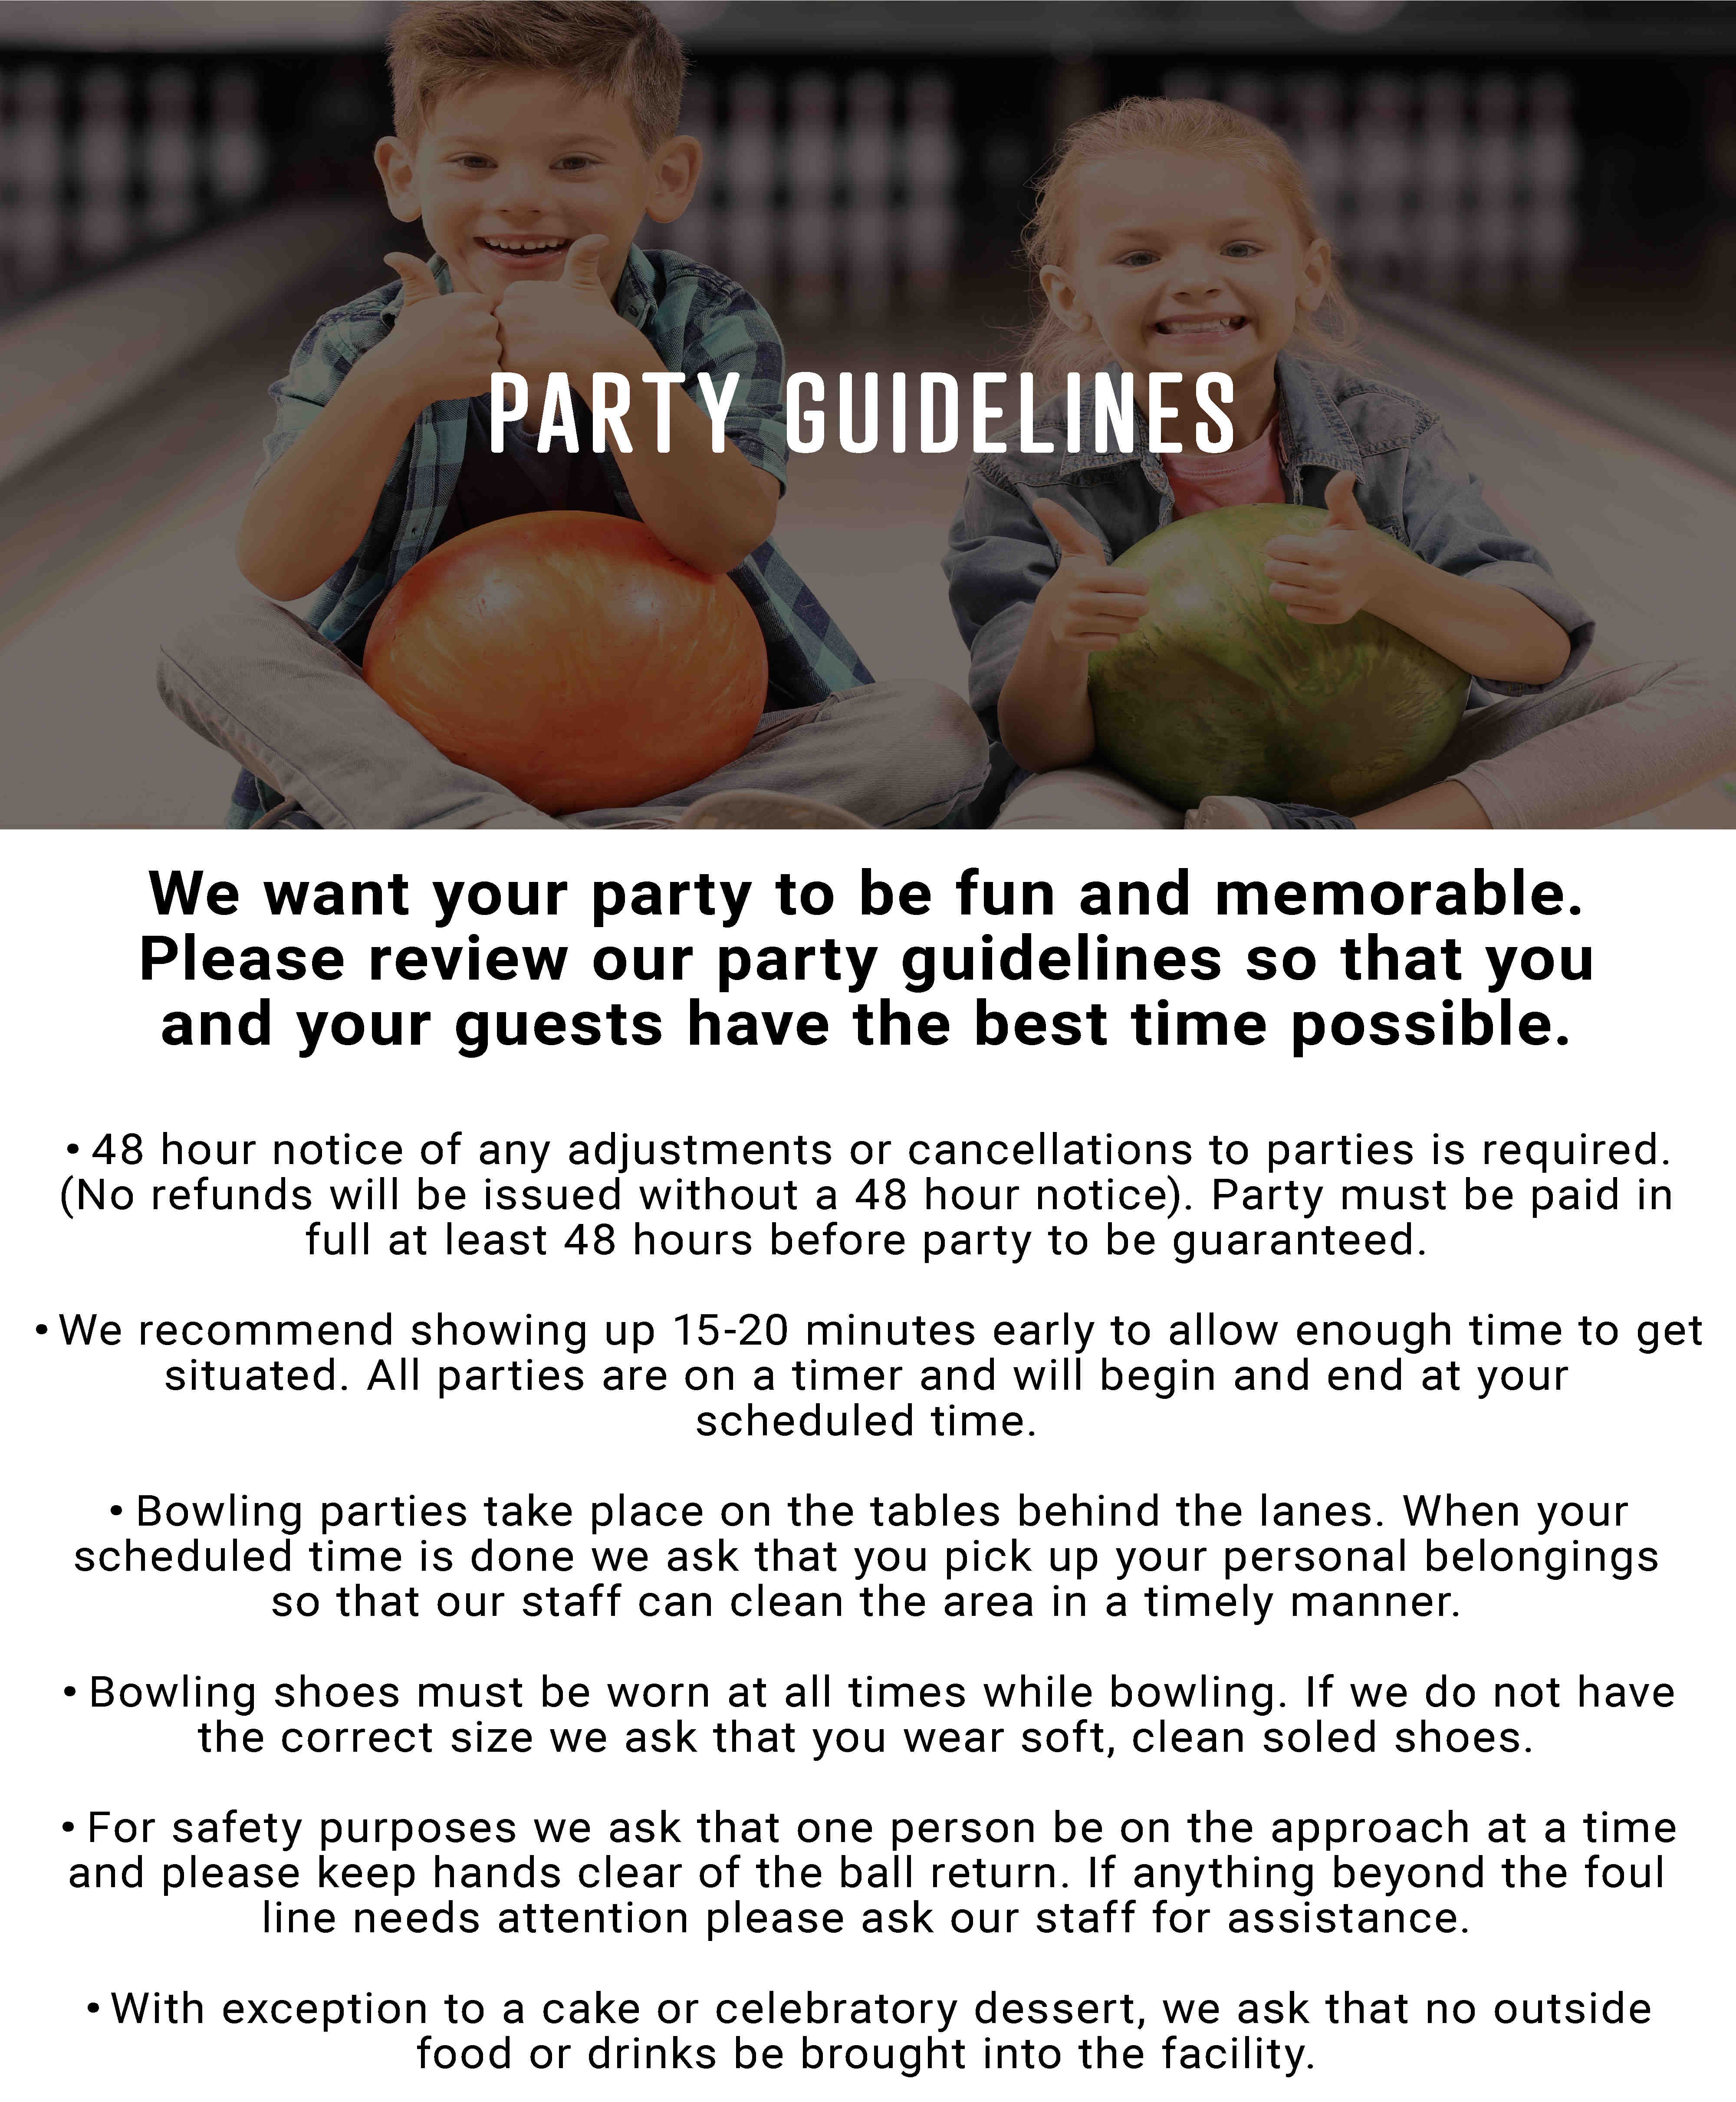 Party guildelines